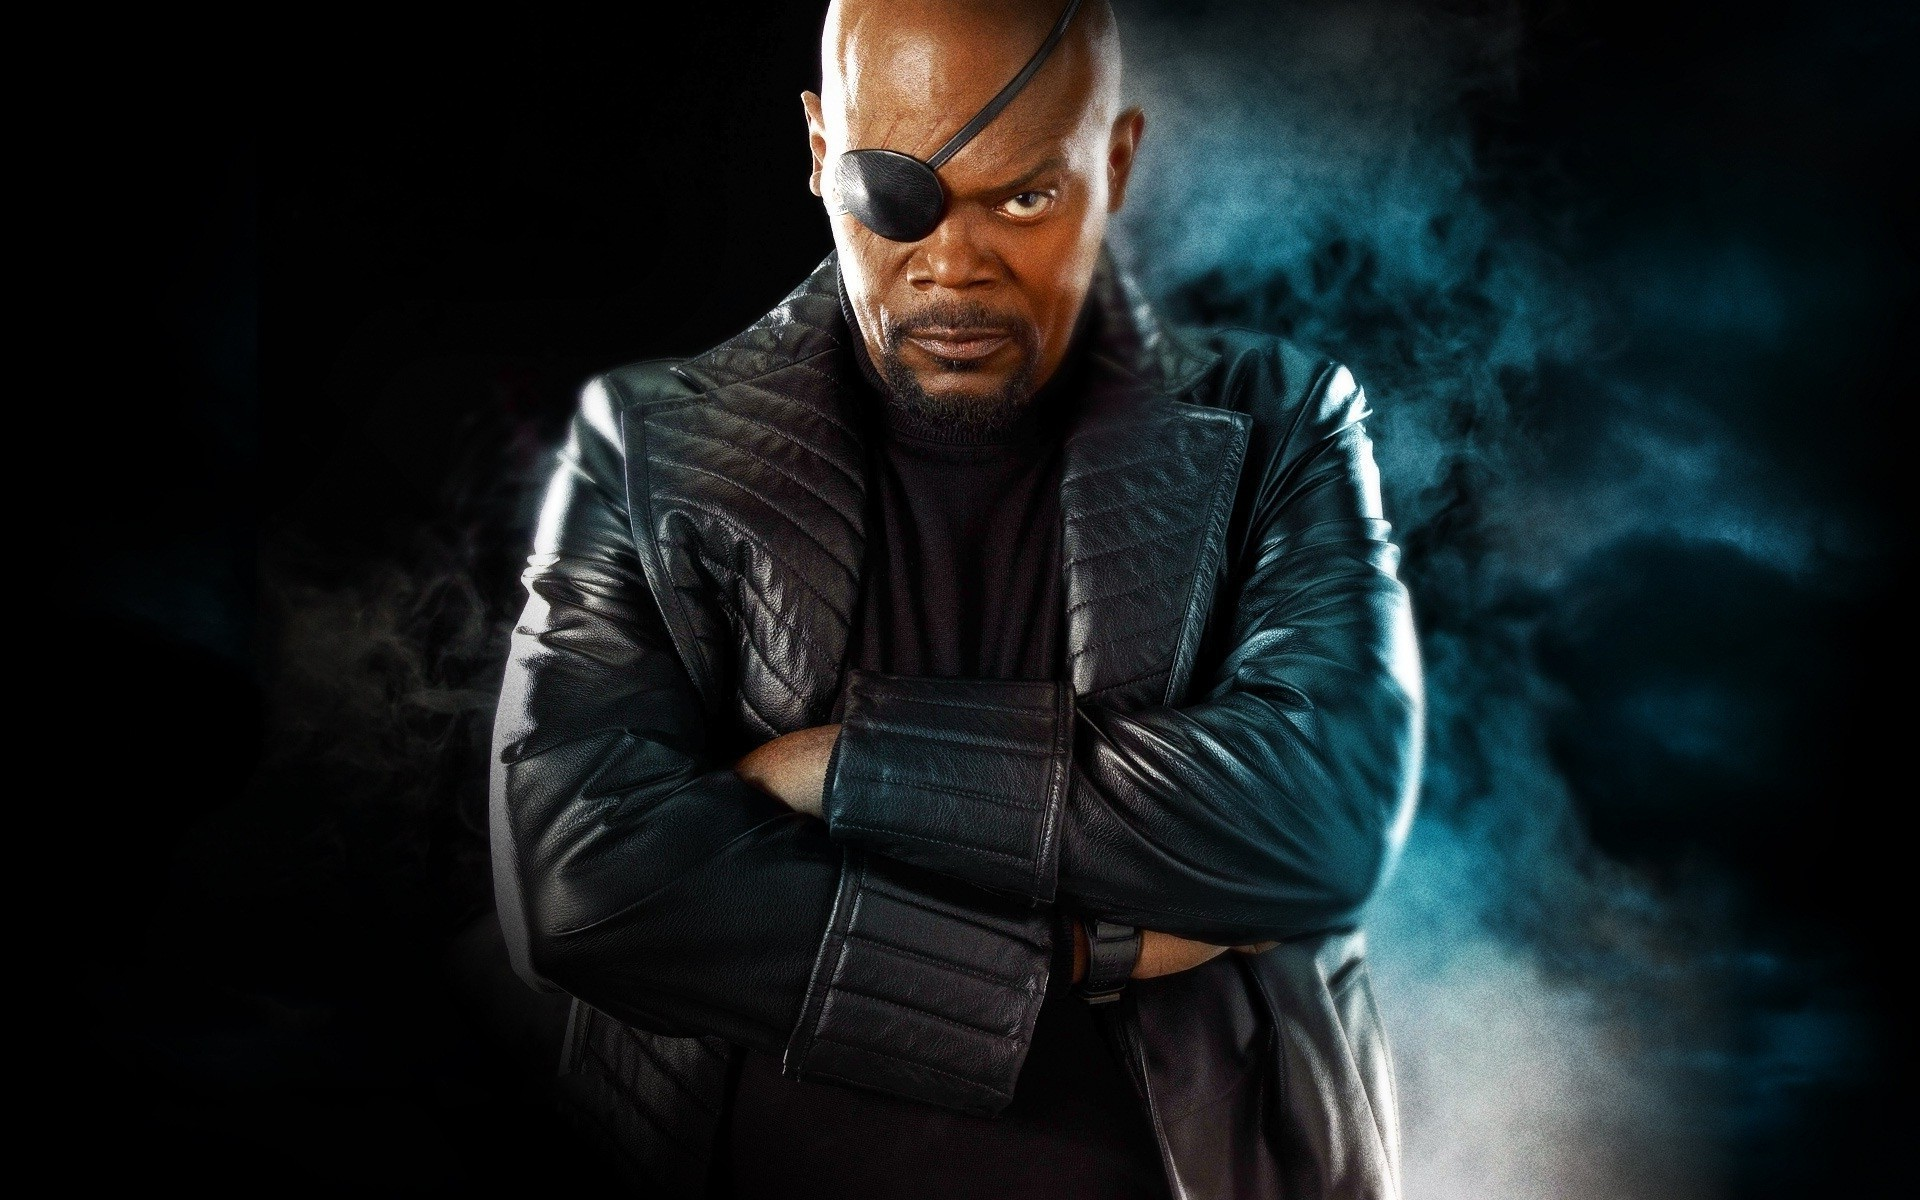 1920x1200 Nick Fury Captain America The Winter Soldier wallpapers (78 Wallpapers)